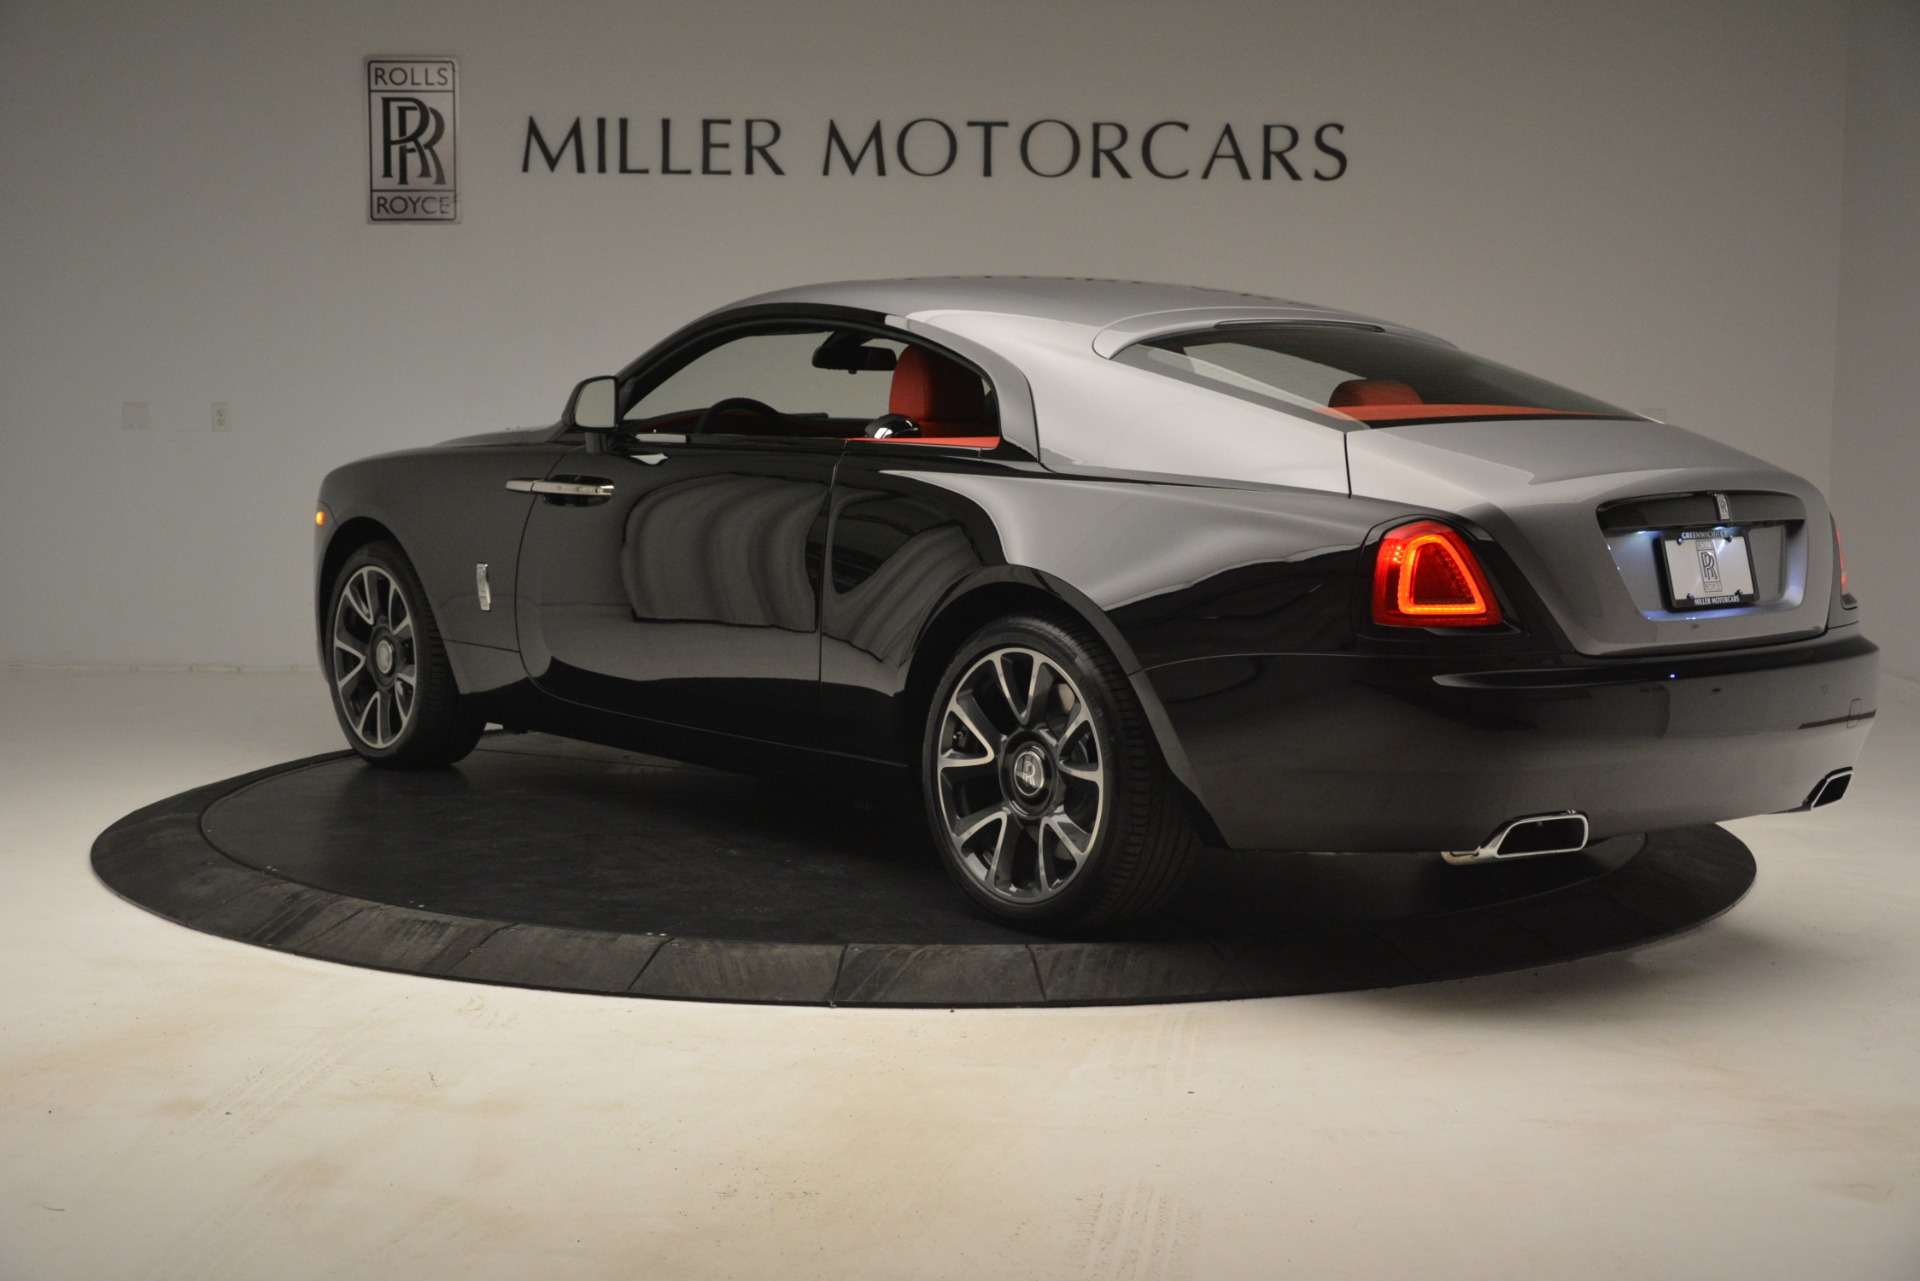 New 2019 Rolls-Royce Wraith  For Sale In Greenwich, CT 2687_p6